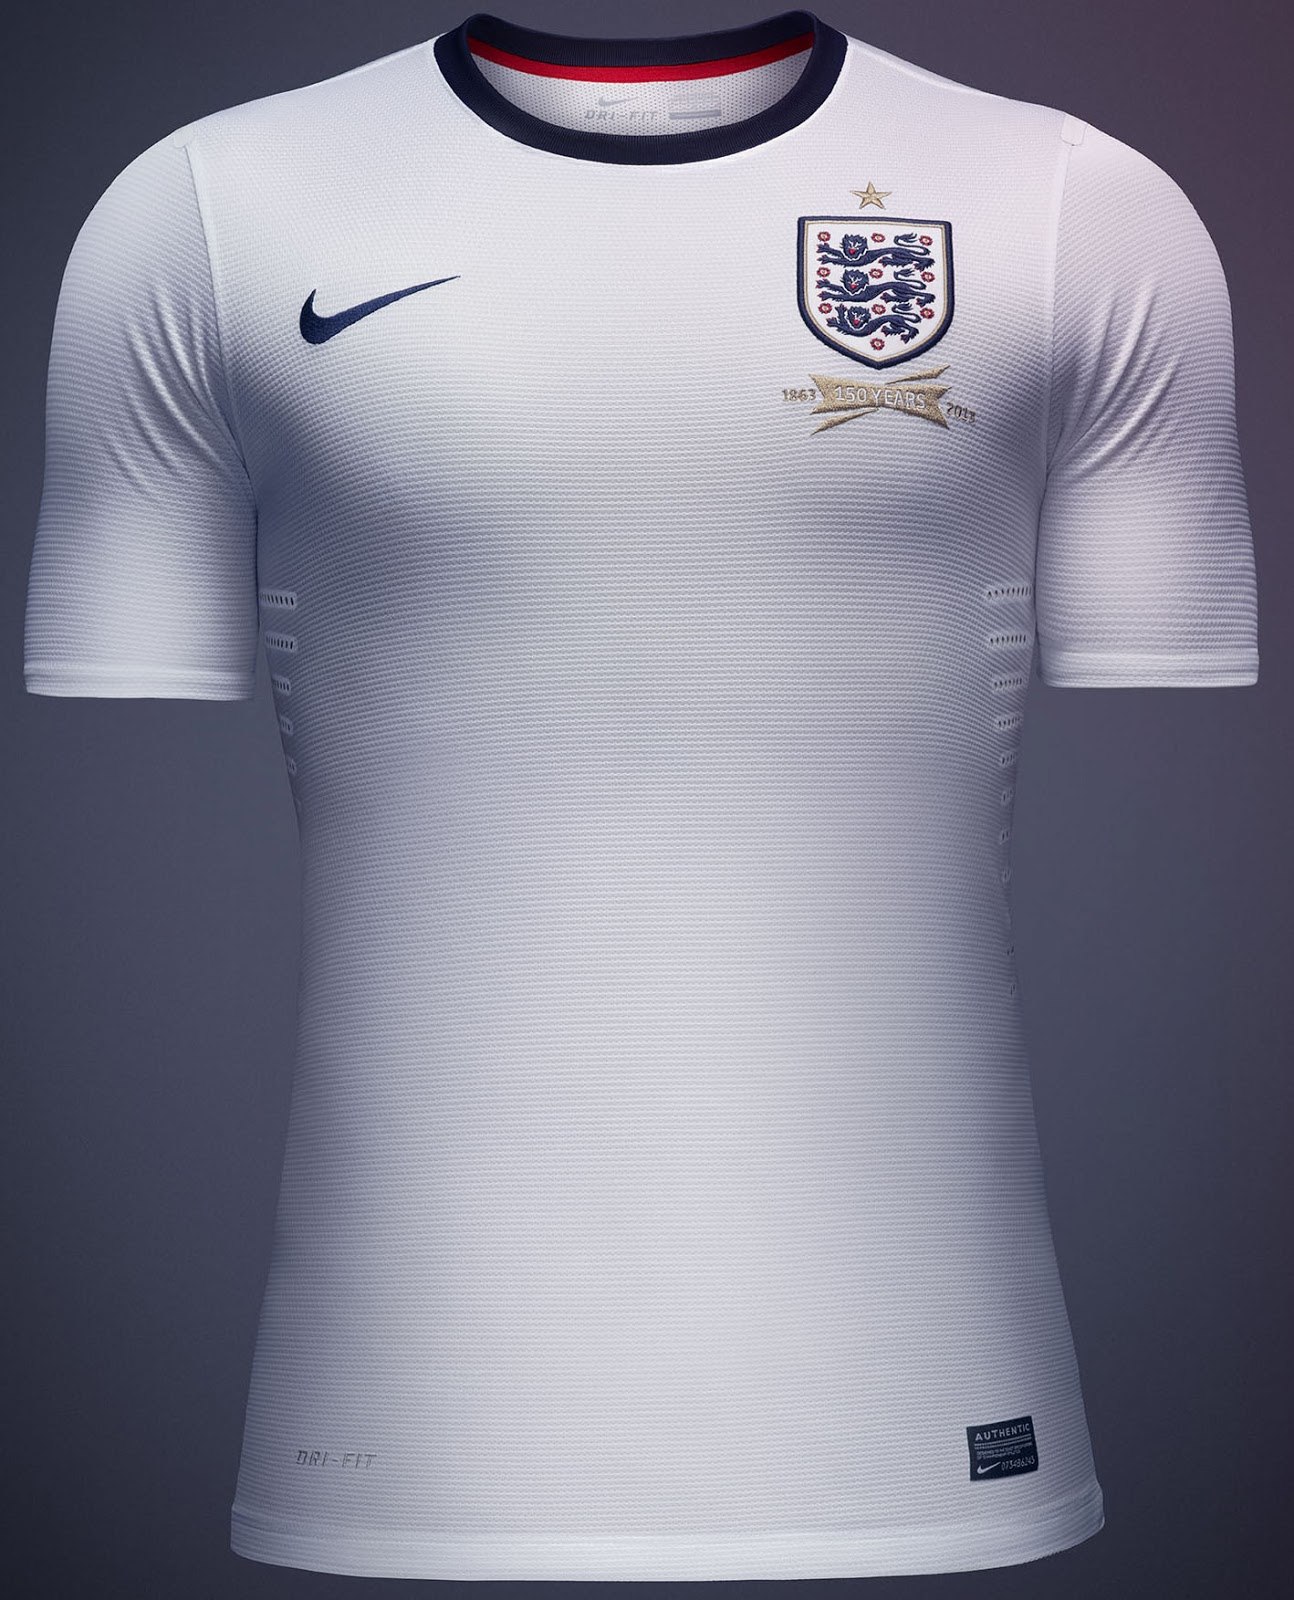 New Nike England 2013 Home And Away Kits Released Footy